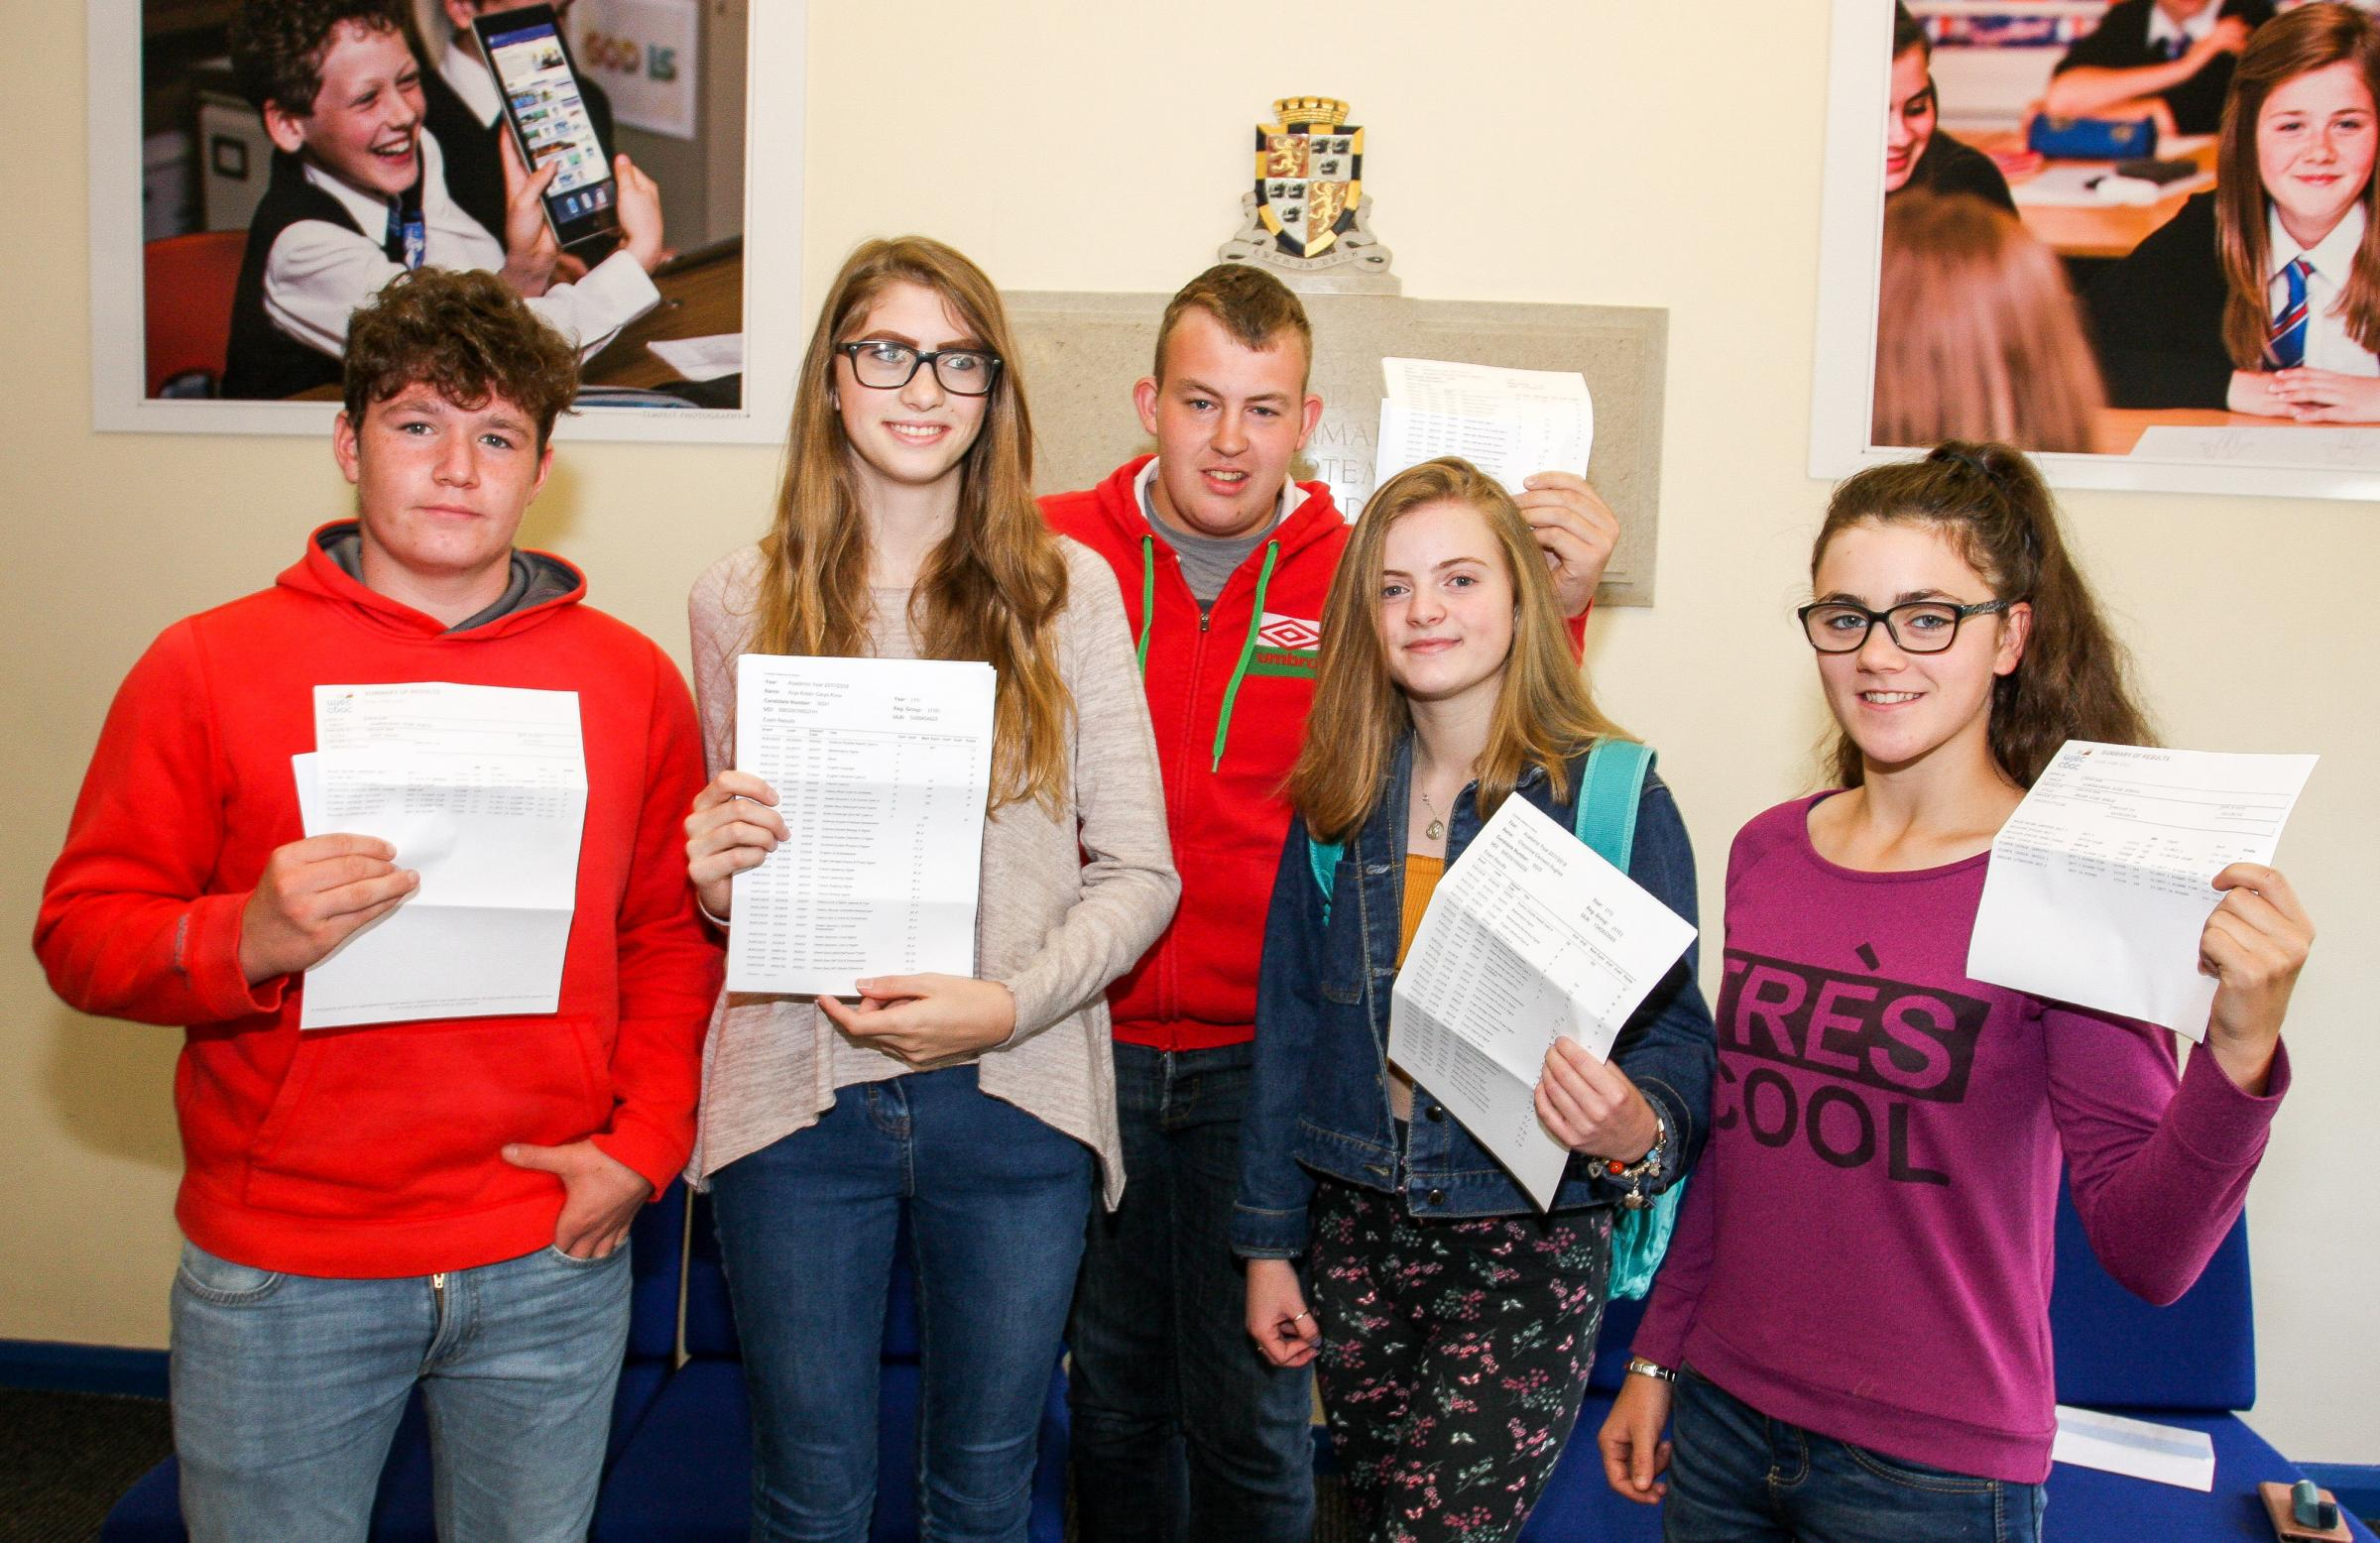 Students at Llandrindod High School were amongst the hundreds of students that collected their GCSE results this week. This group include Cheyenne Hughes, Anja Knox, Ben Williams, Joey Lloyd and Megan Brain. Photograph by Ernie Husson.